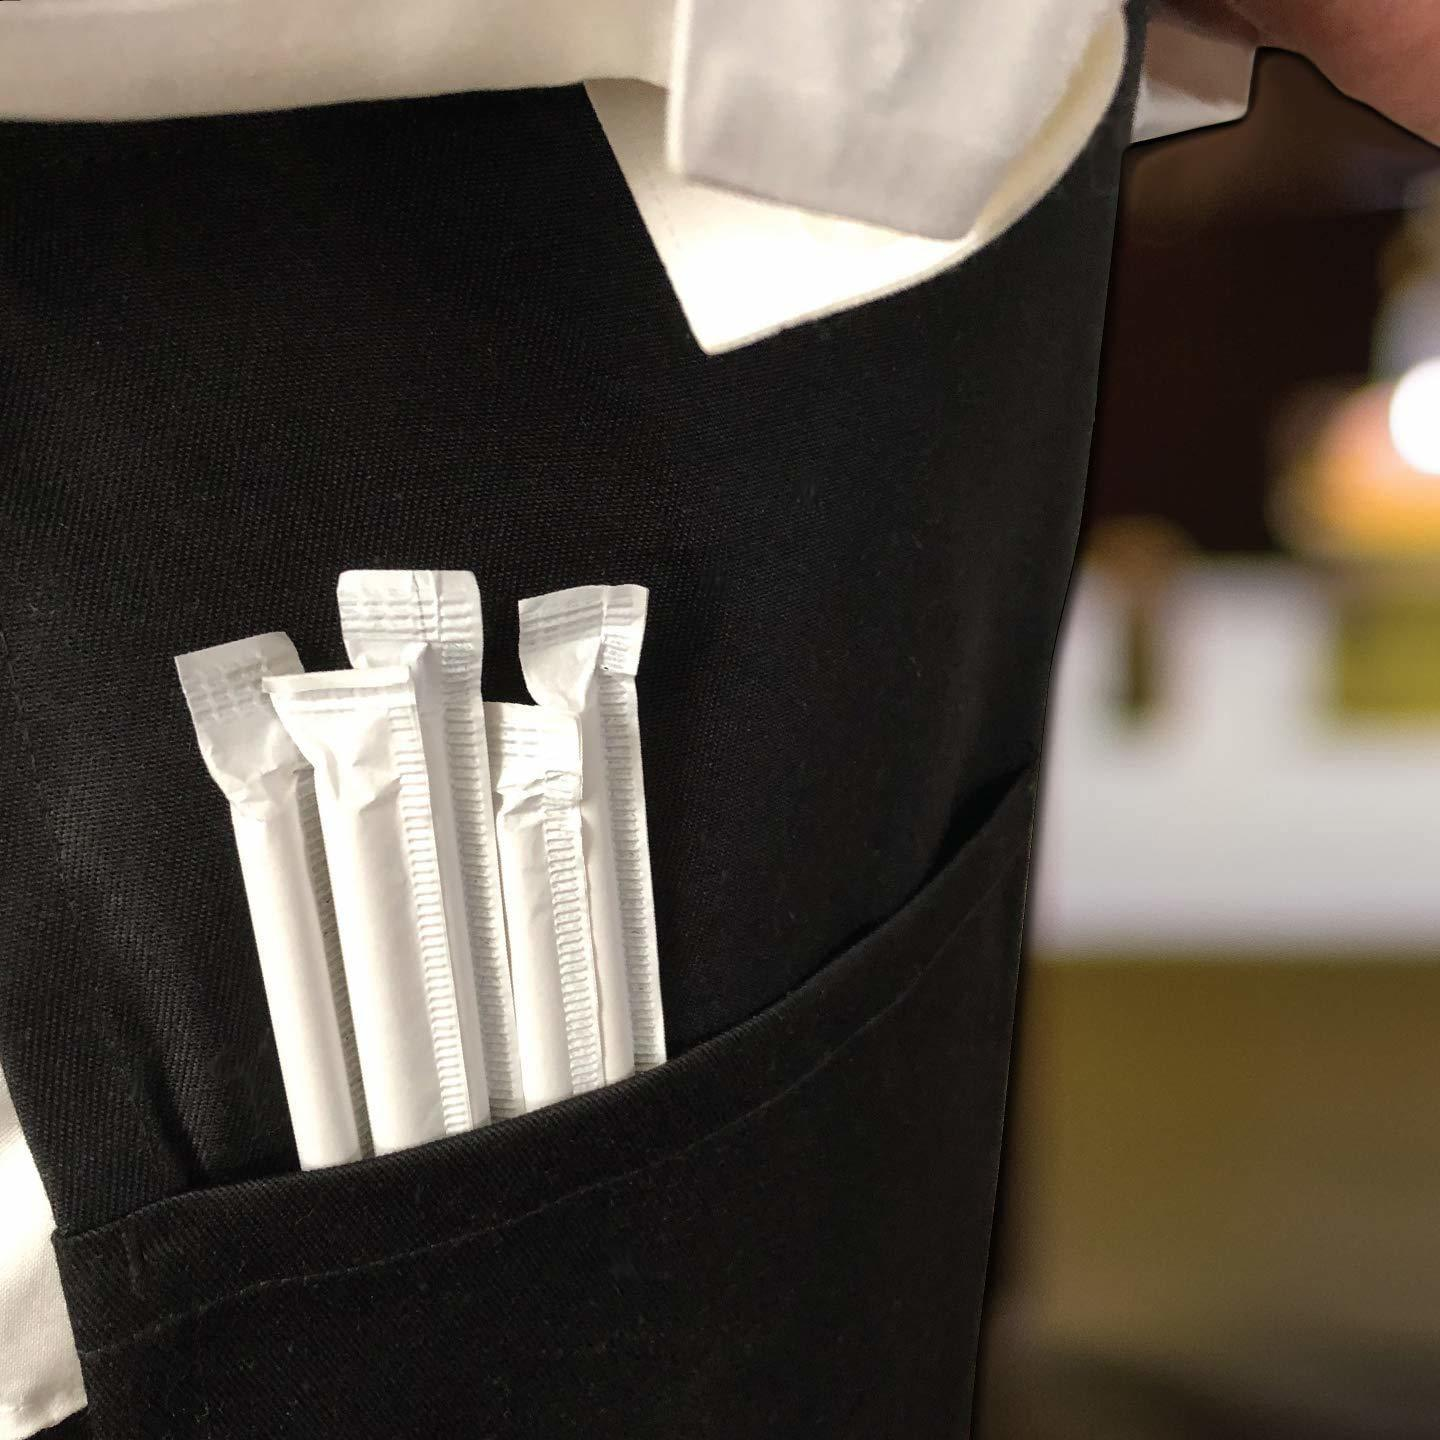 FDA Approved Paper Straws - Individually Wrapped Dye Free, Size  8mm x 200mm